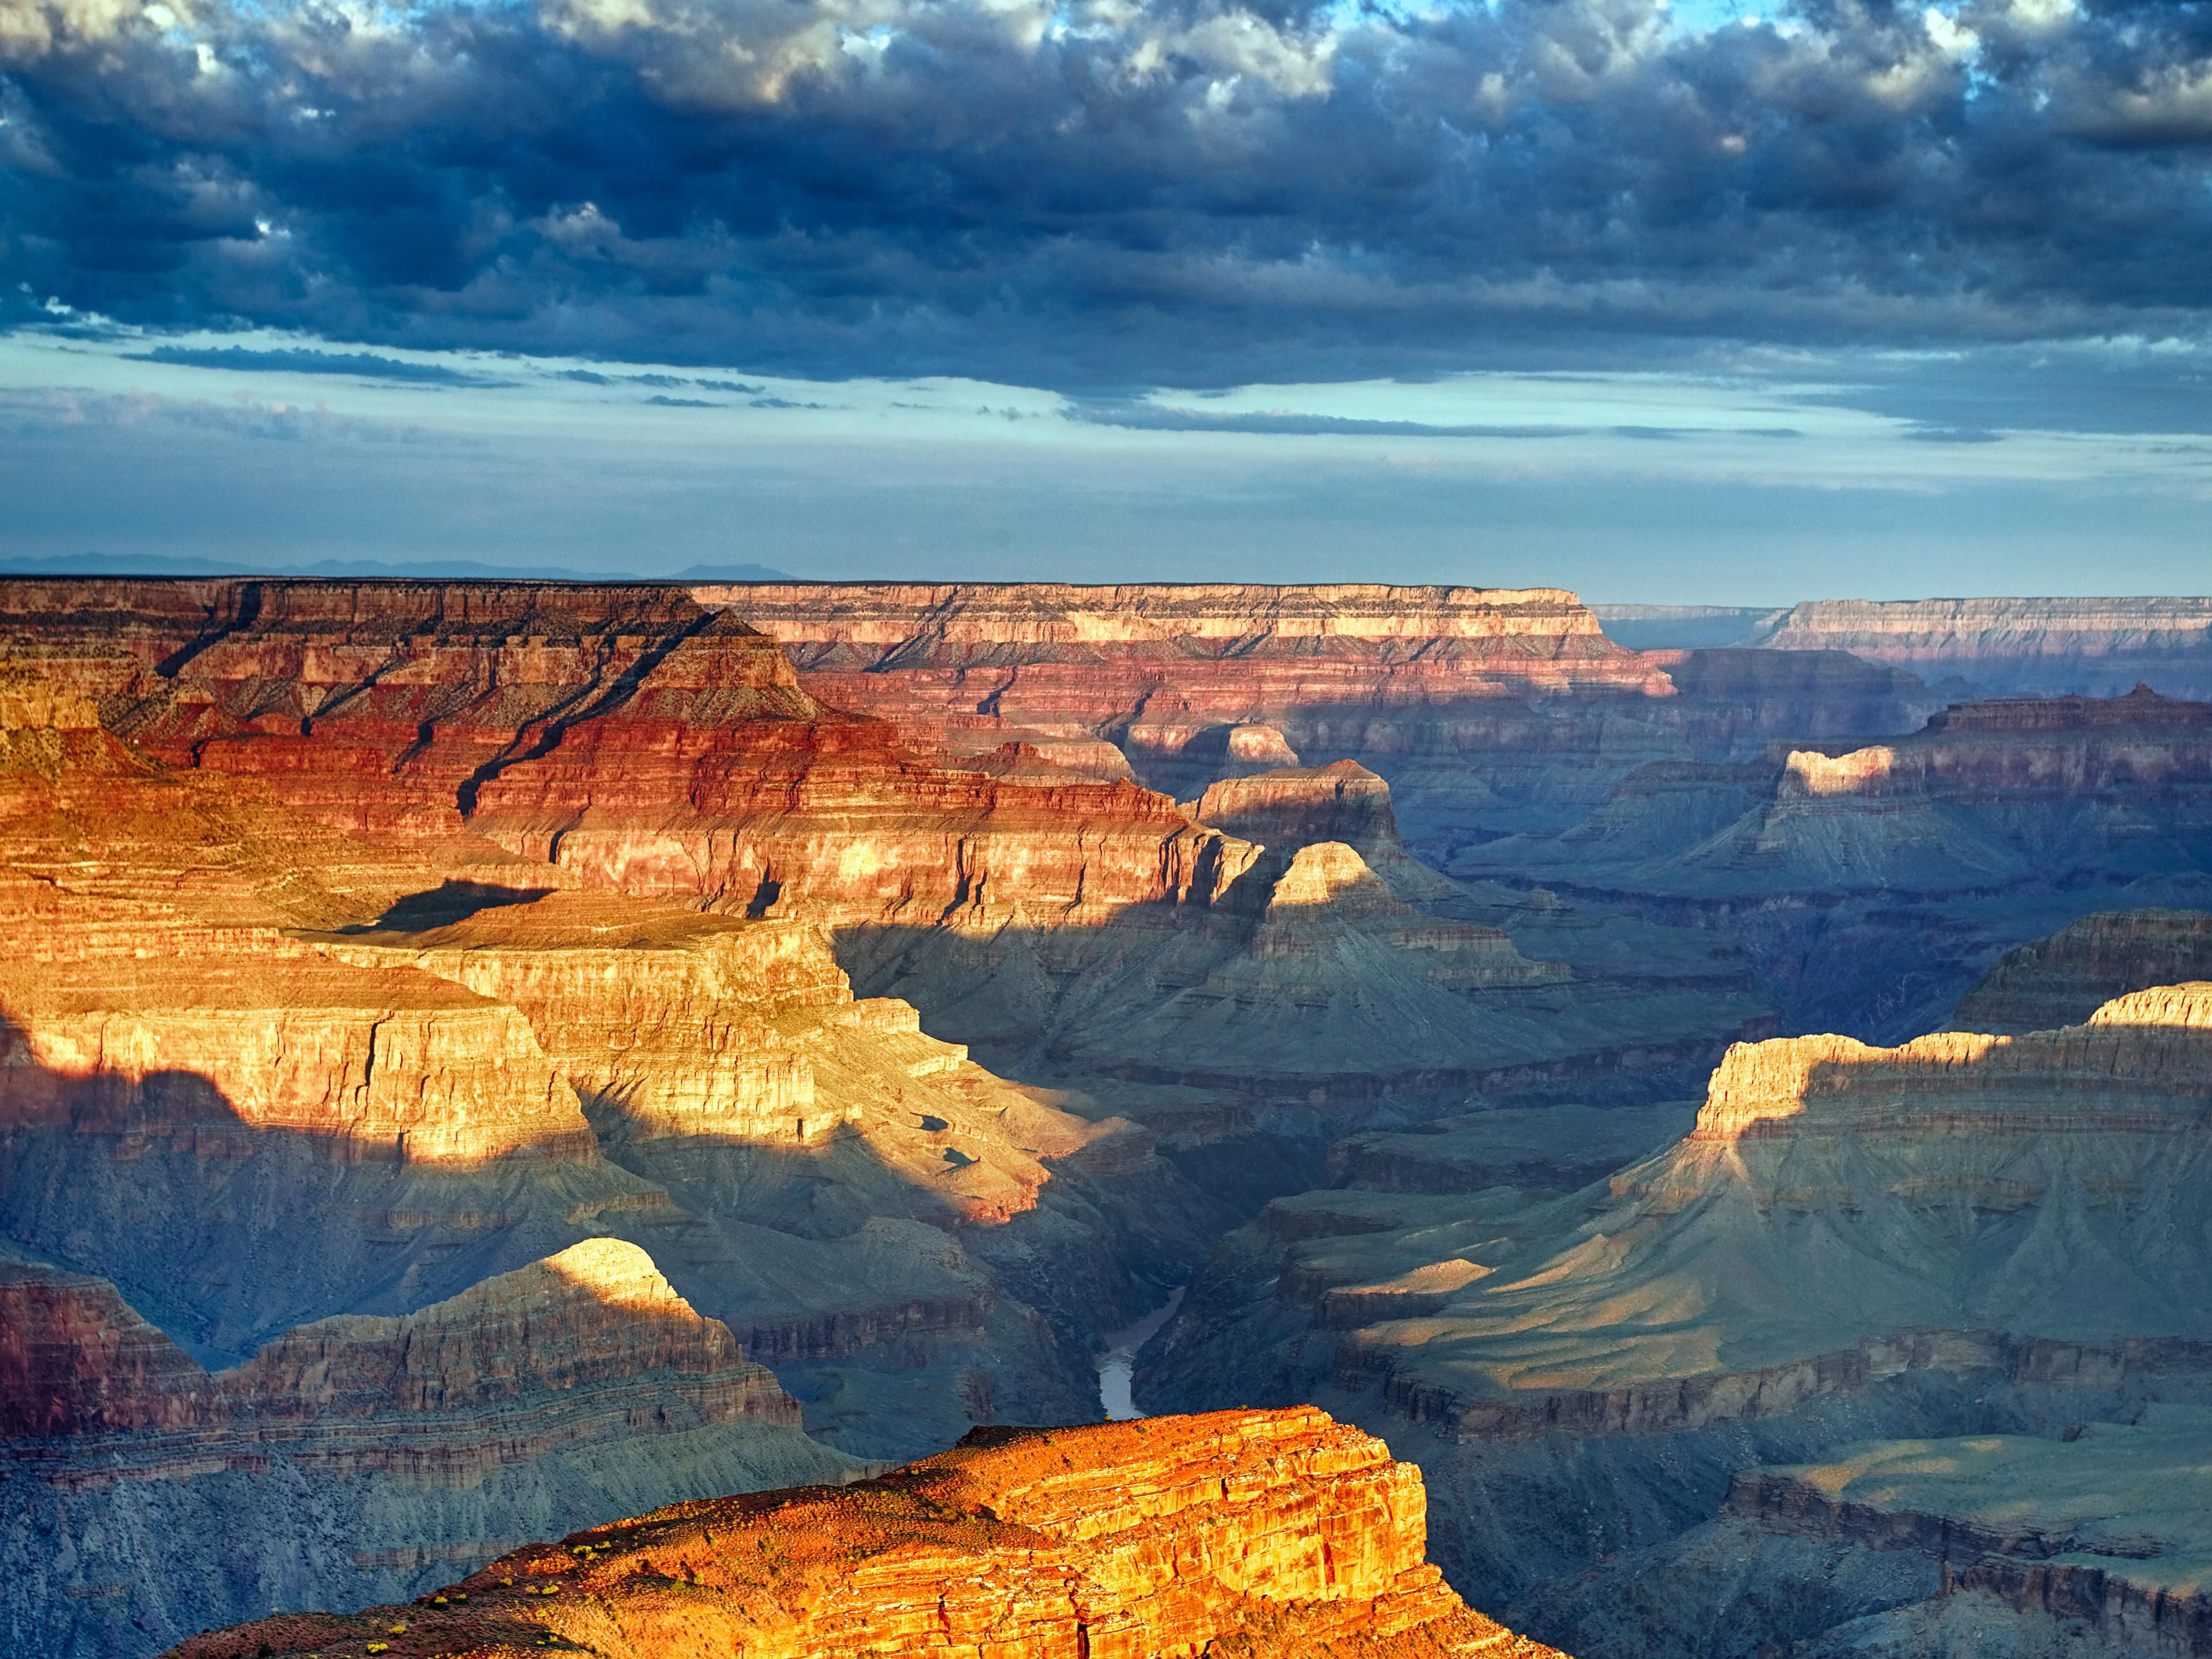 Welcome to the beautiful Grand Canyon National Park